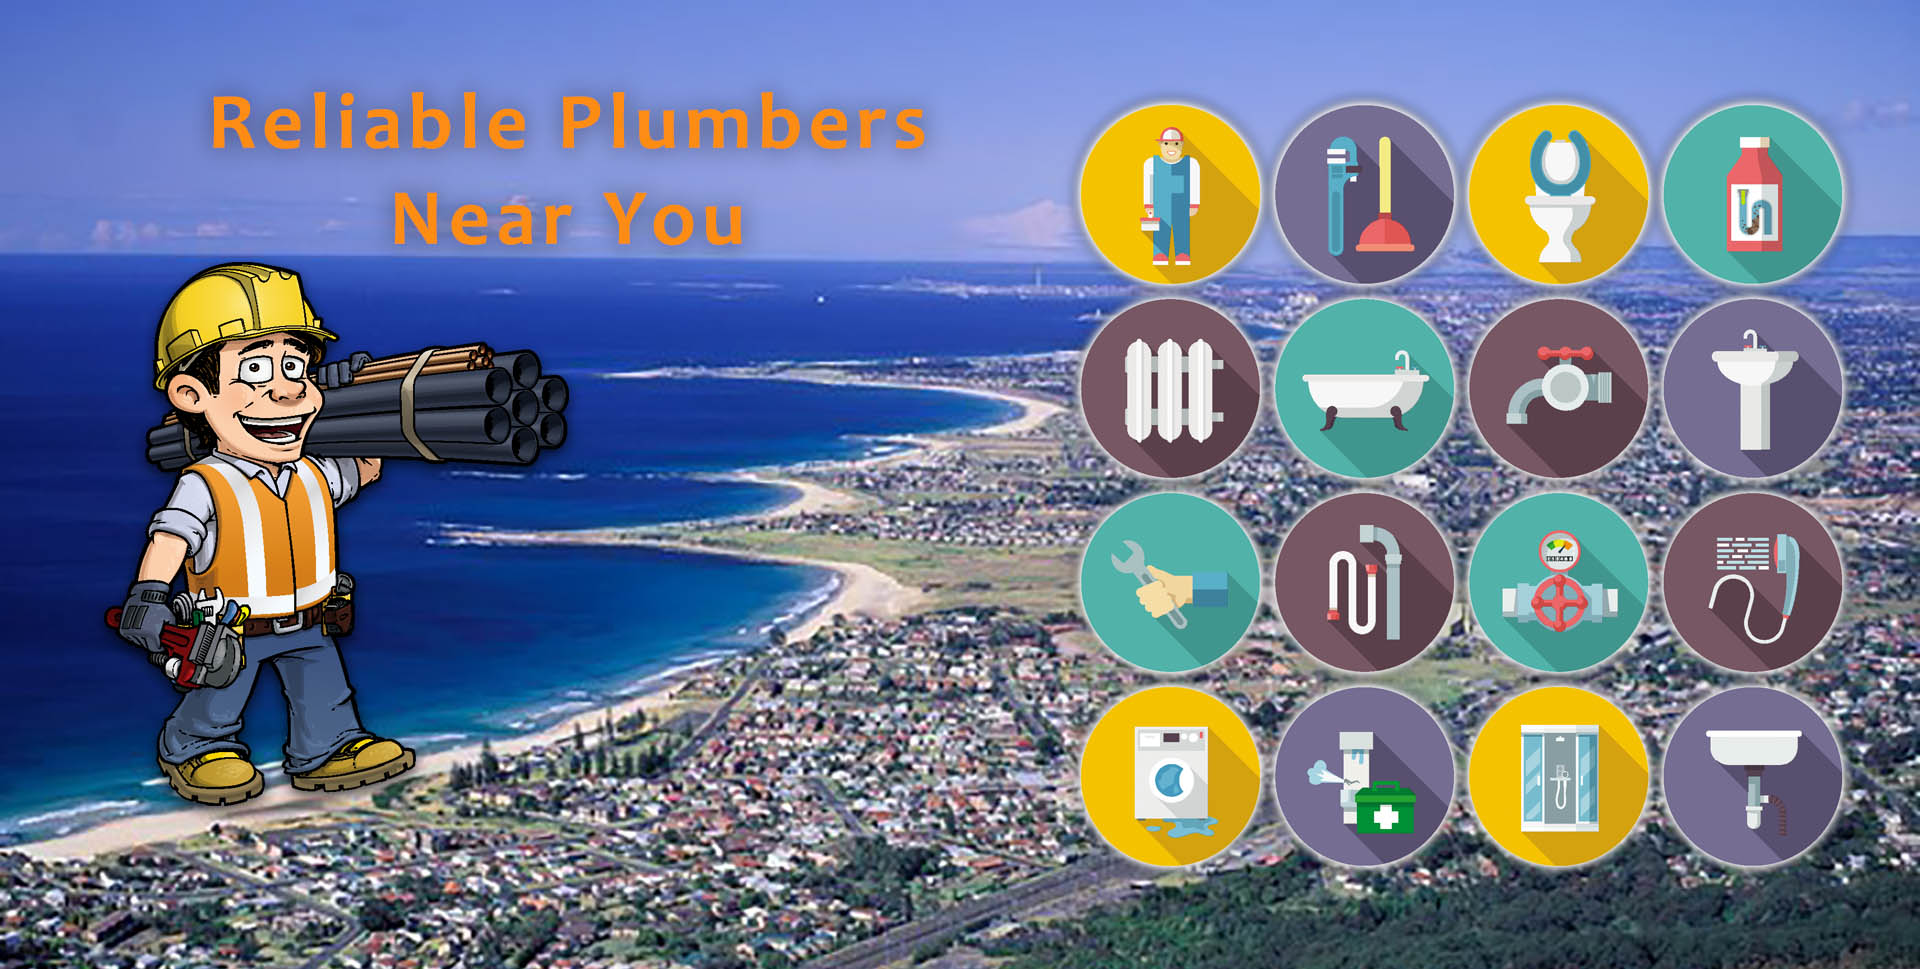 Reliable and prompt plumbers in Wollongong